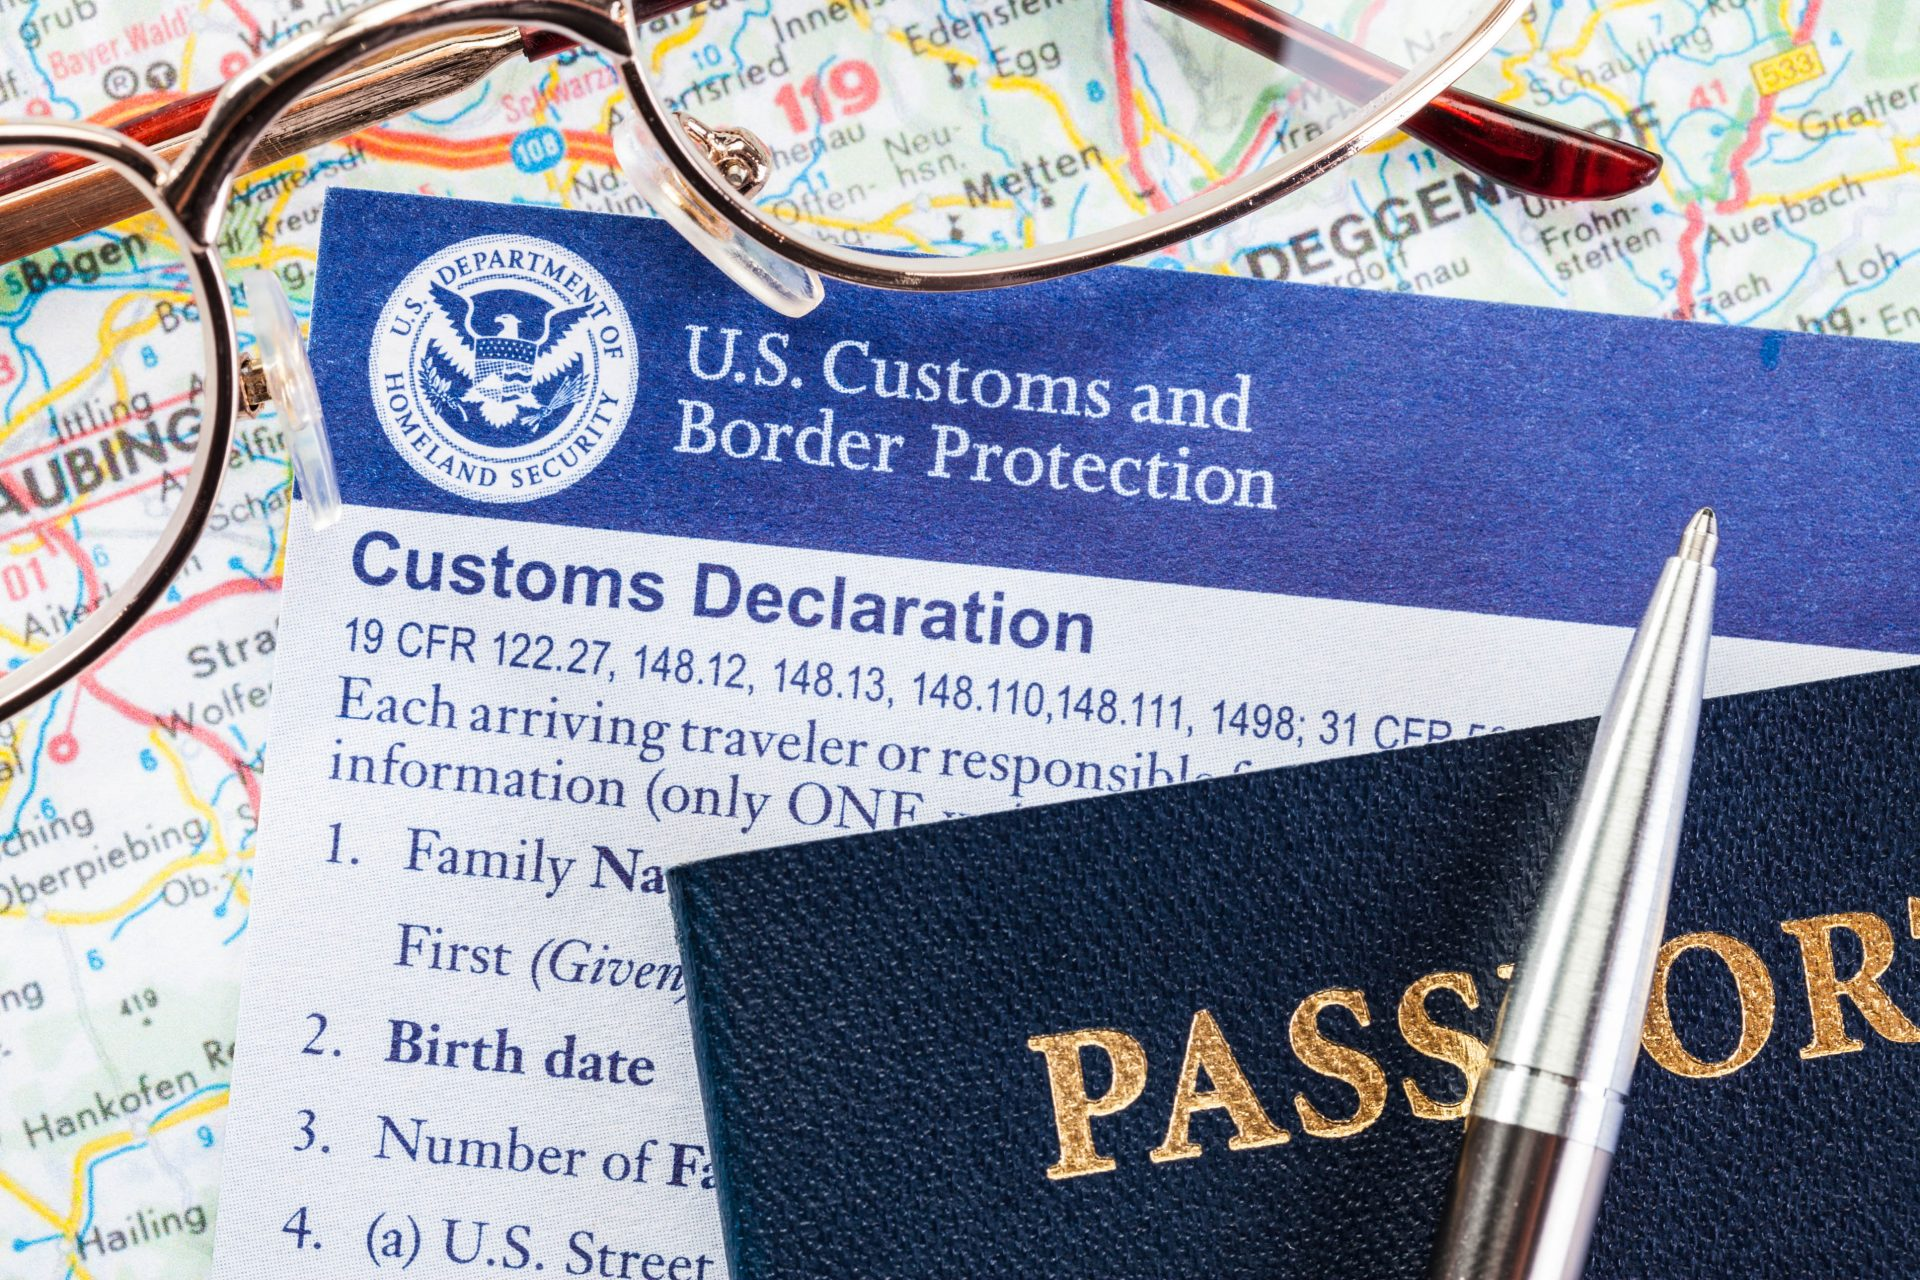 US Customs Declaration